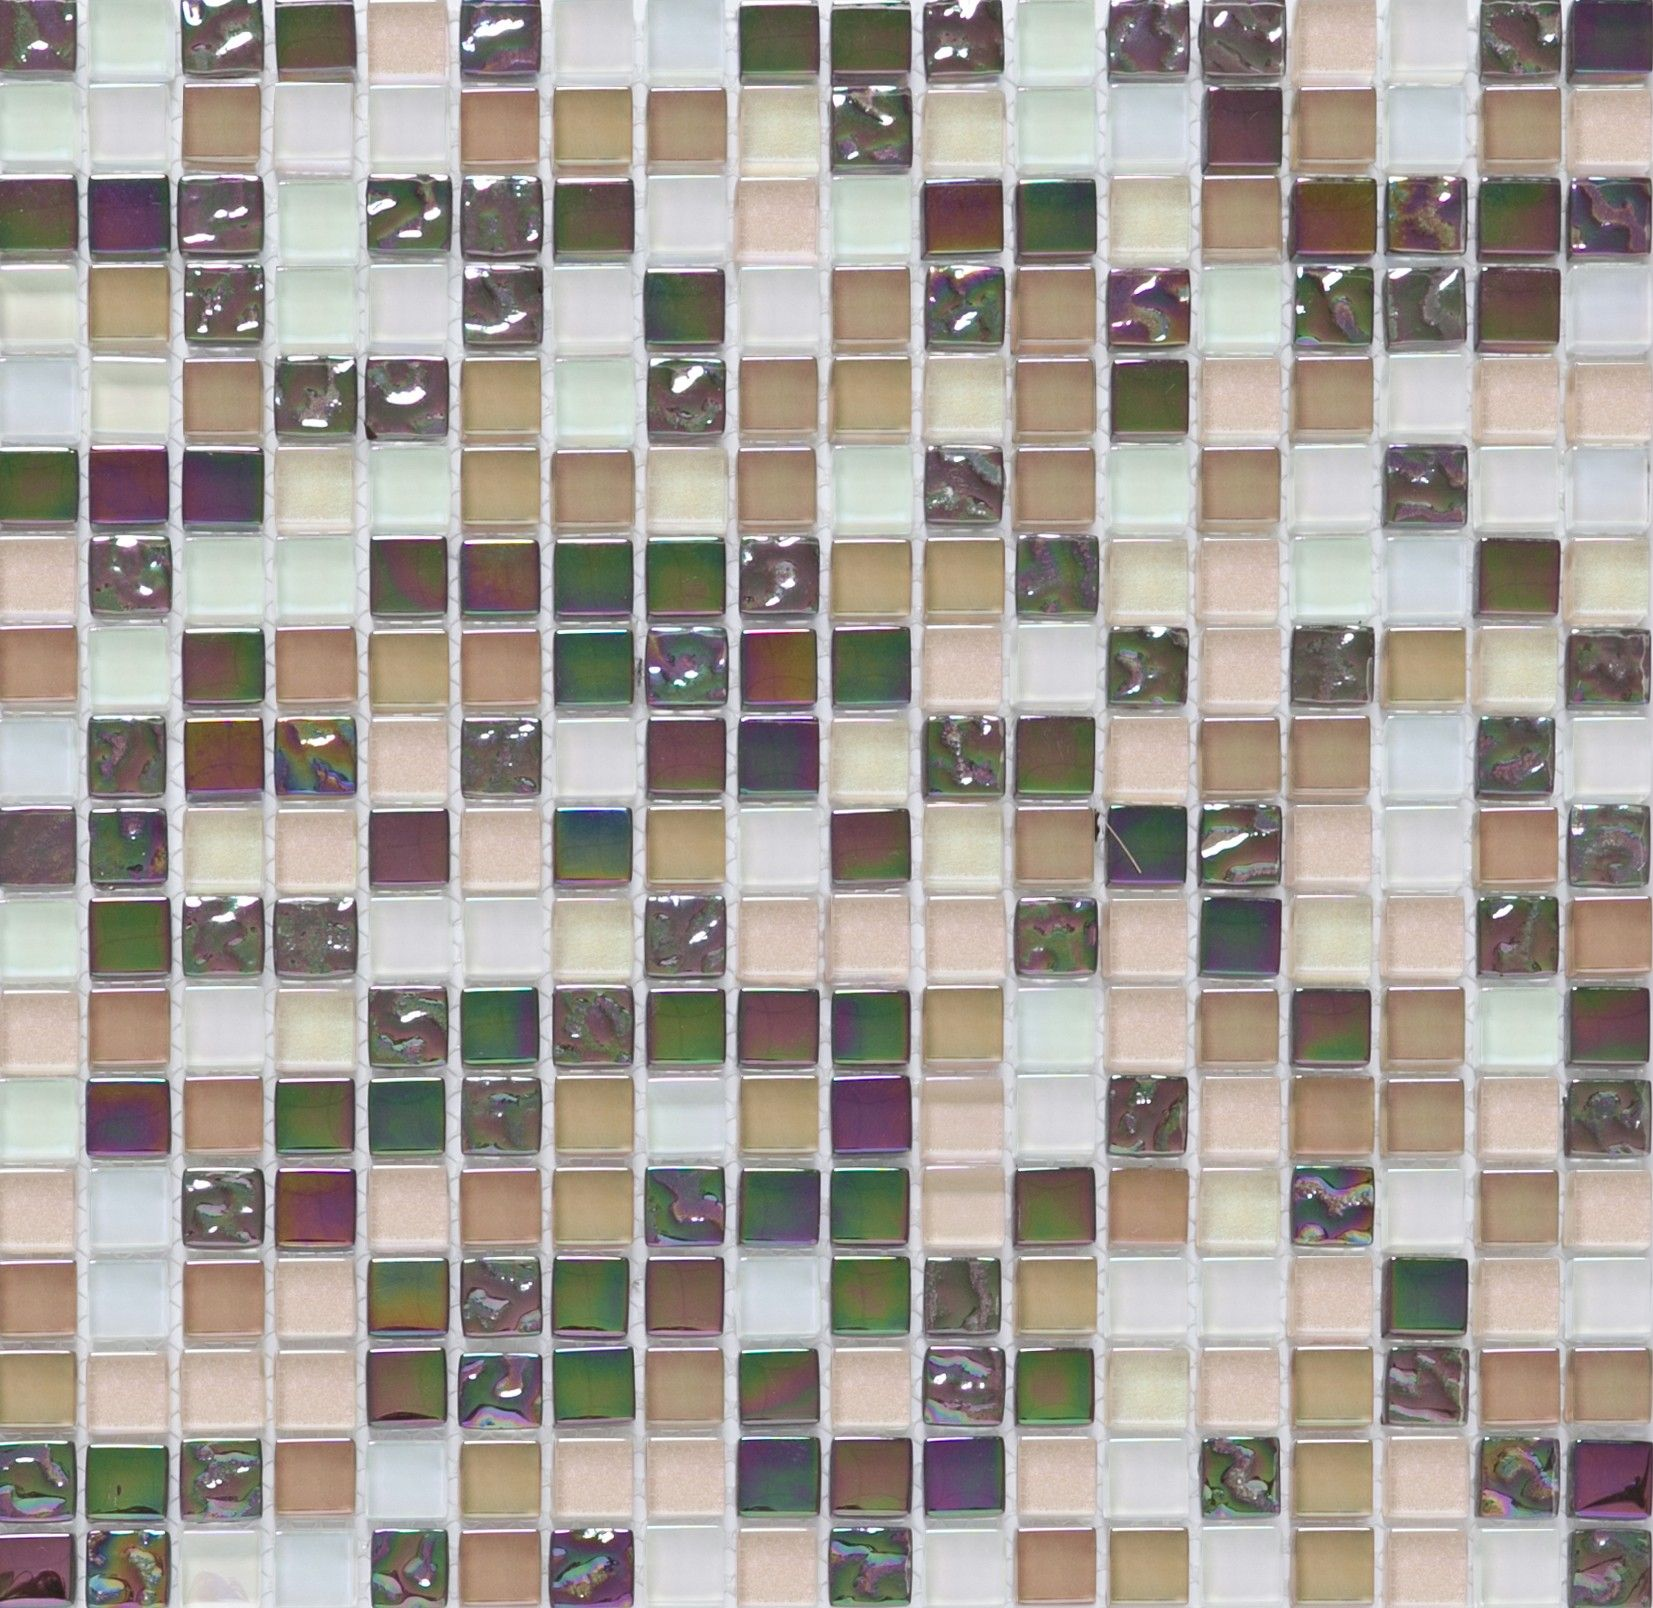 Glass marble type of the tiles